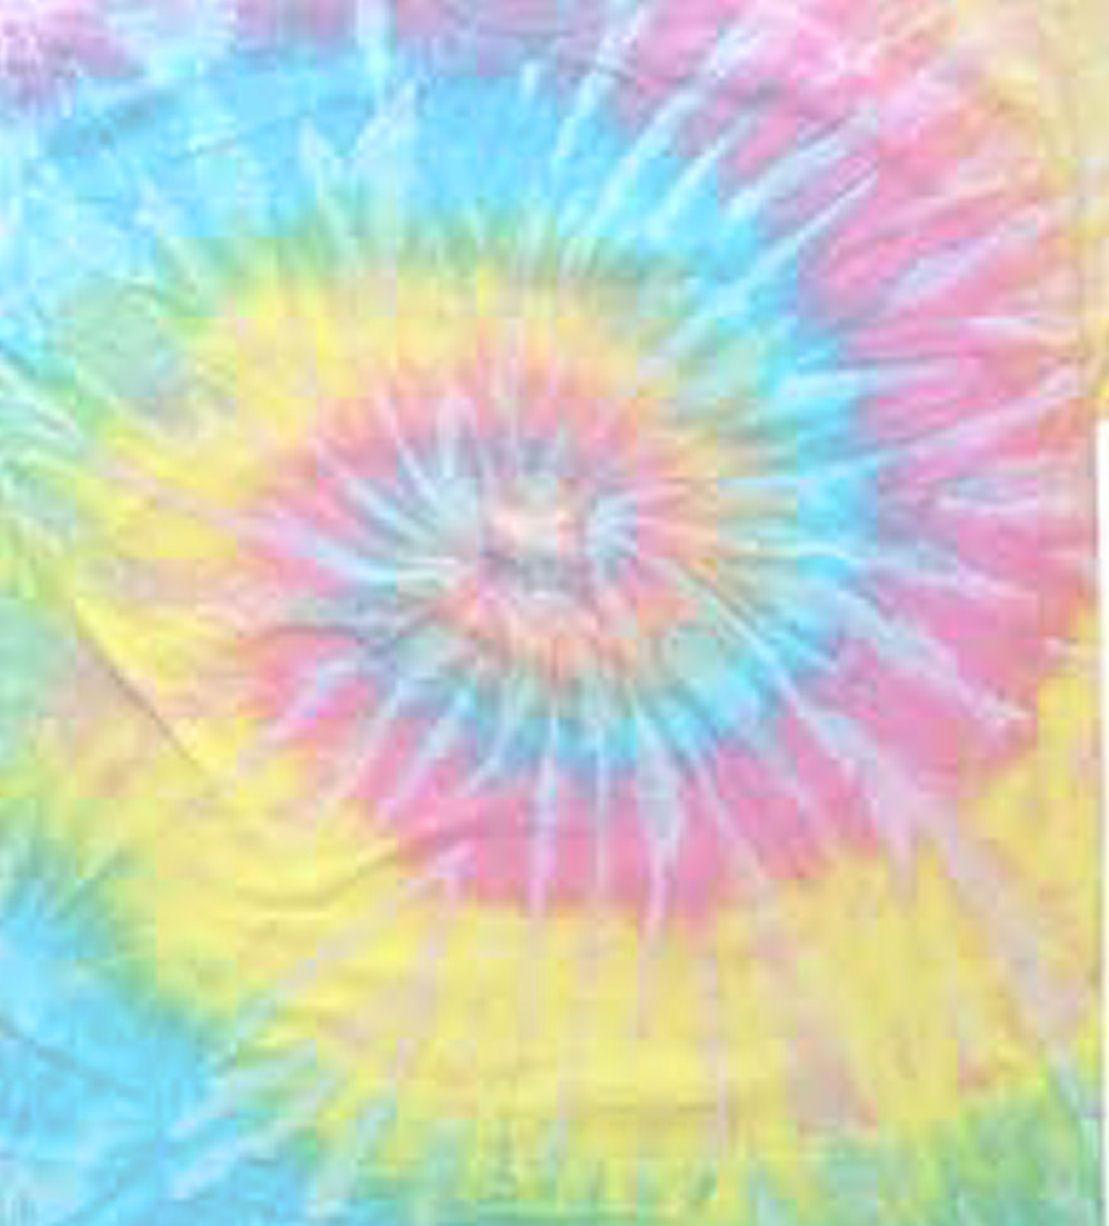 Tie dye wallpapers wallpaper cave tie dye wallpaper for android tie dye wallpaper iphone 7864 voltagebd Image collections